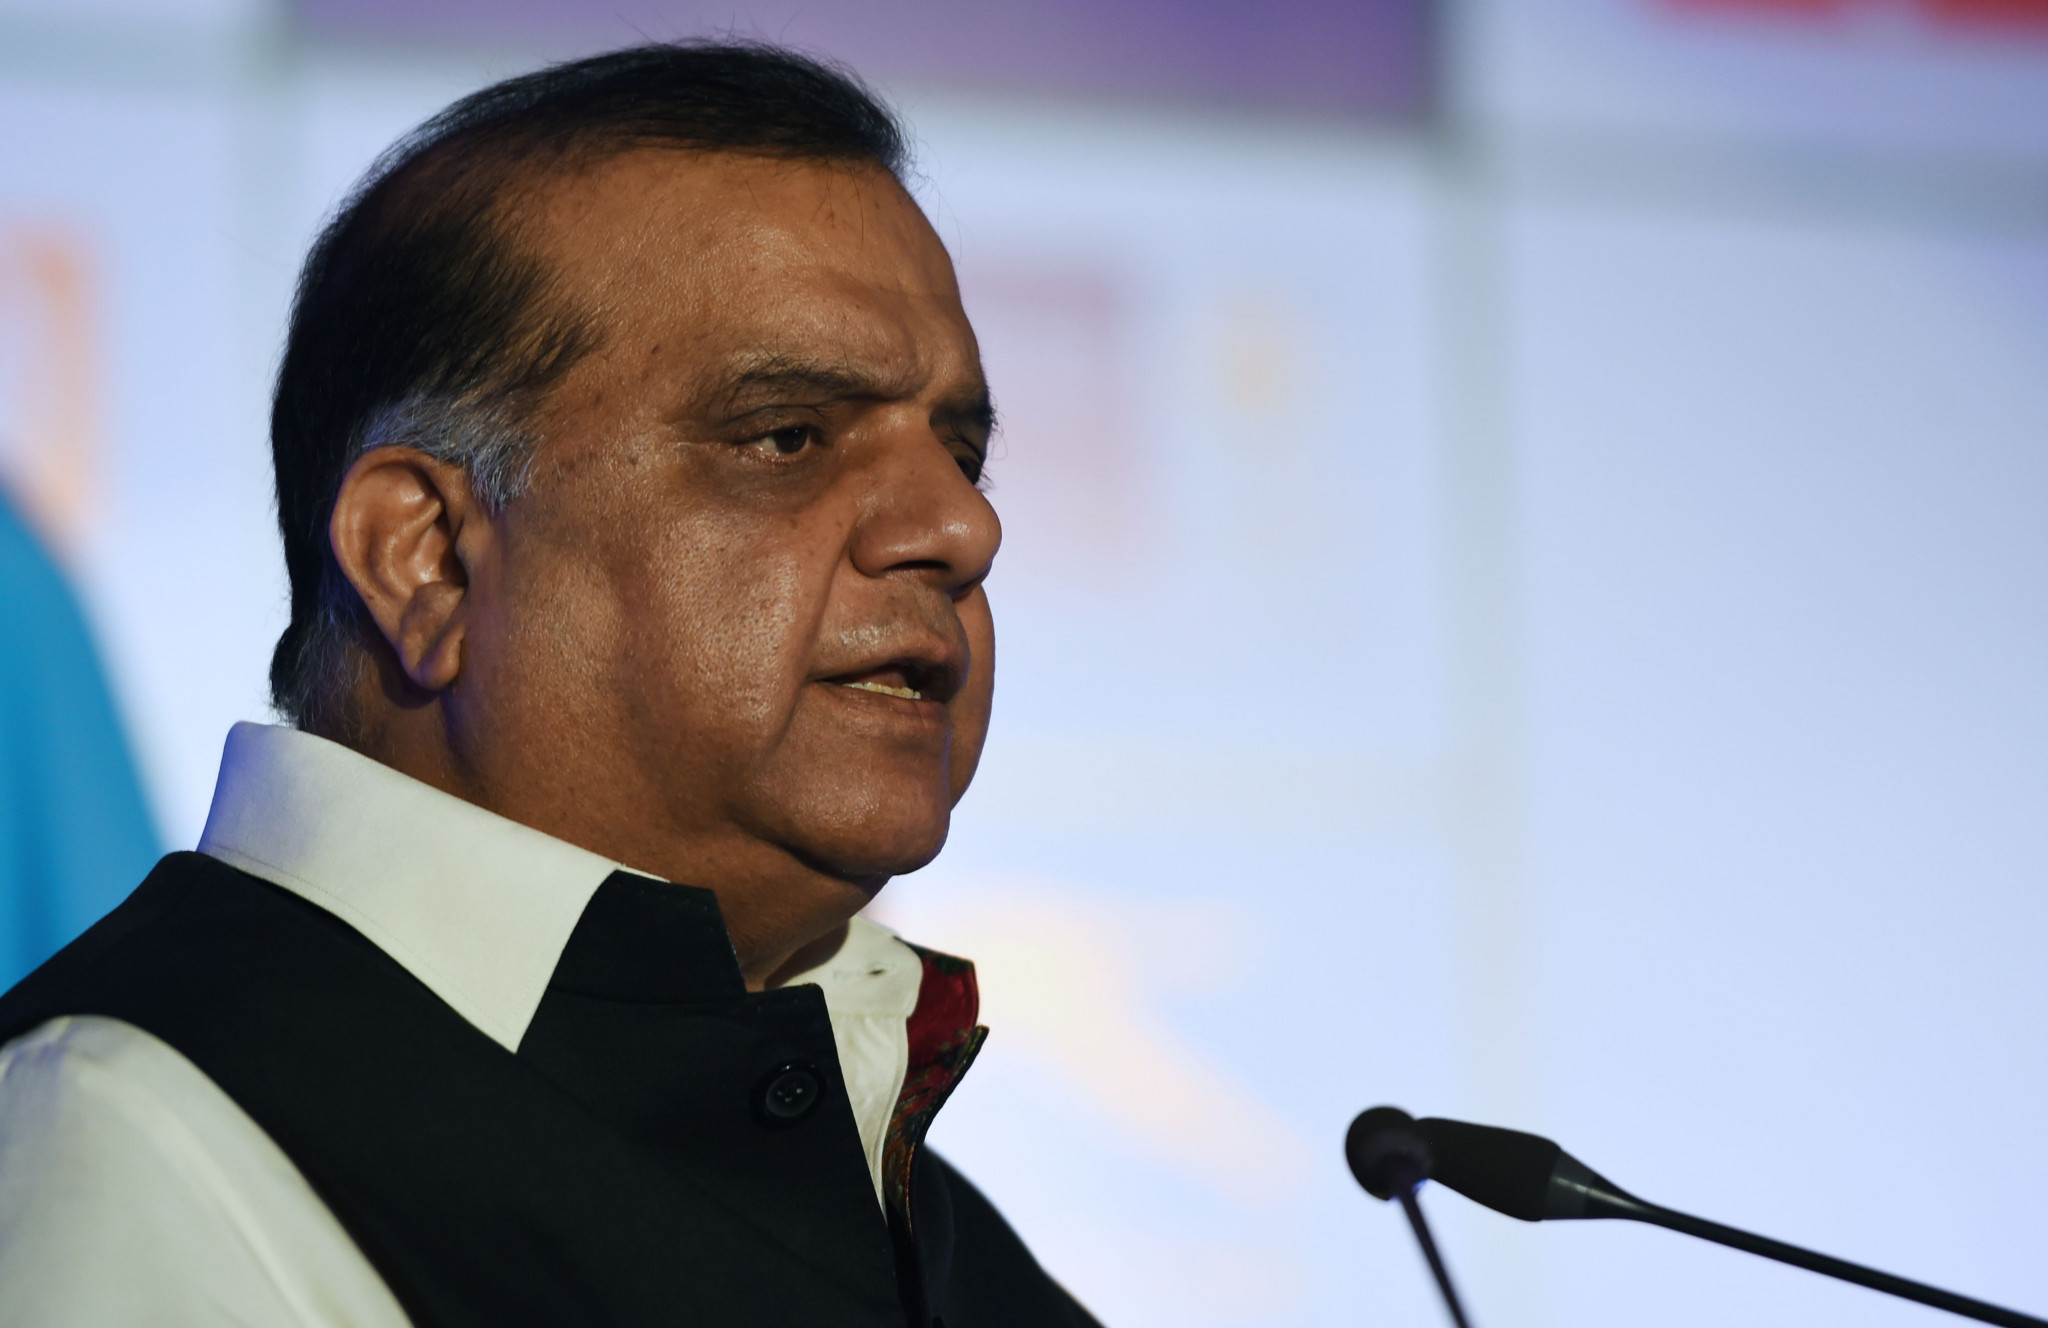 Narinder Batra is set to attend the election on behalf of the IOC ©Getty Images